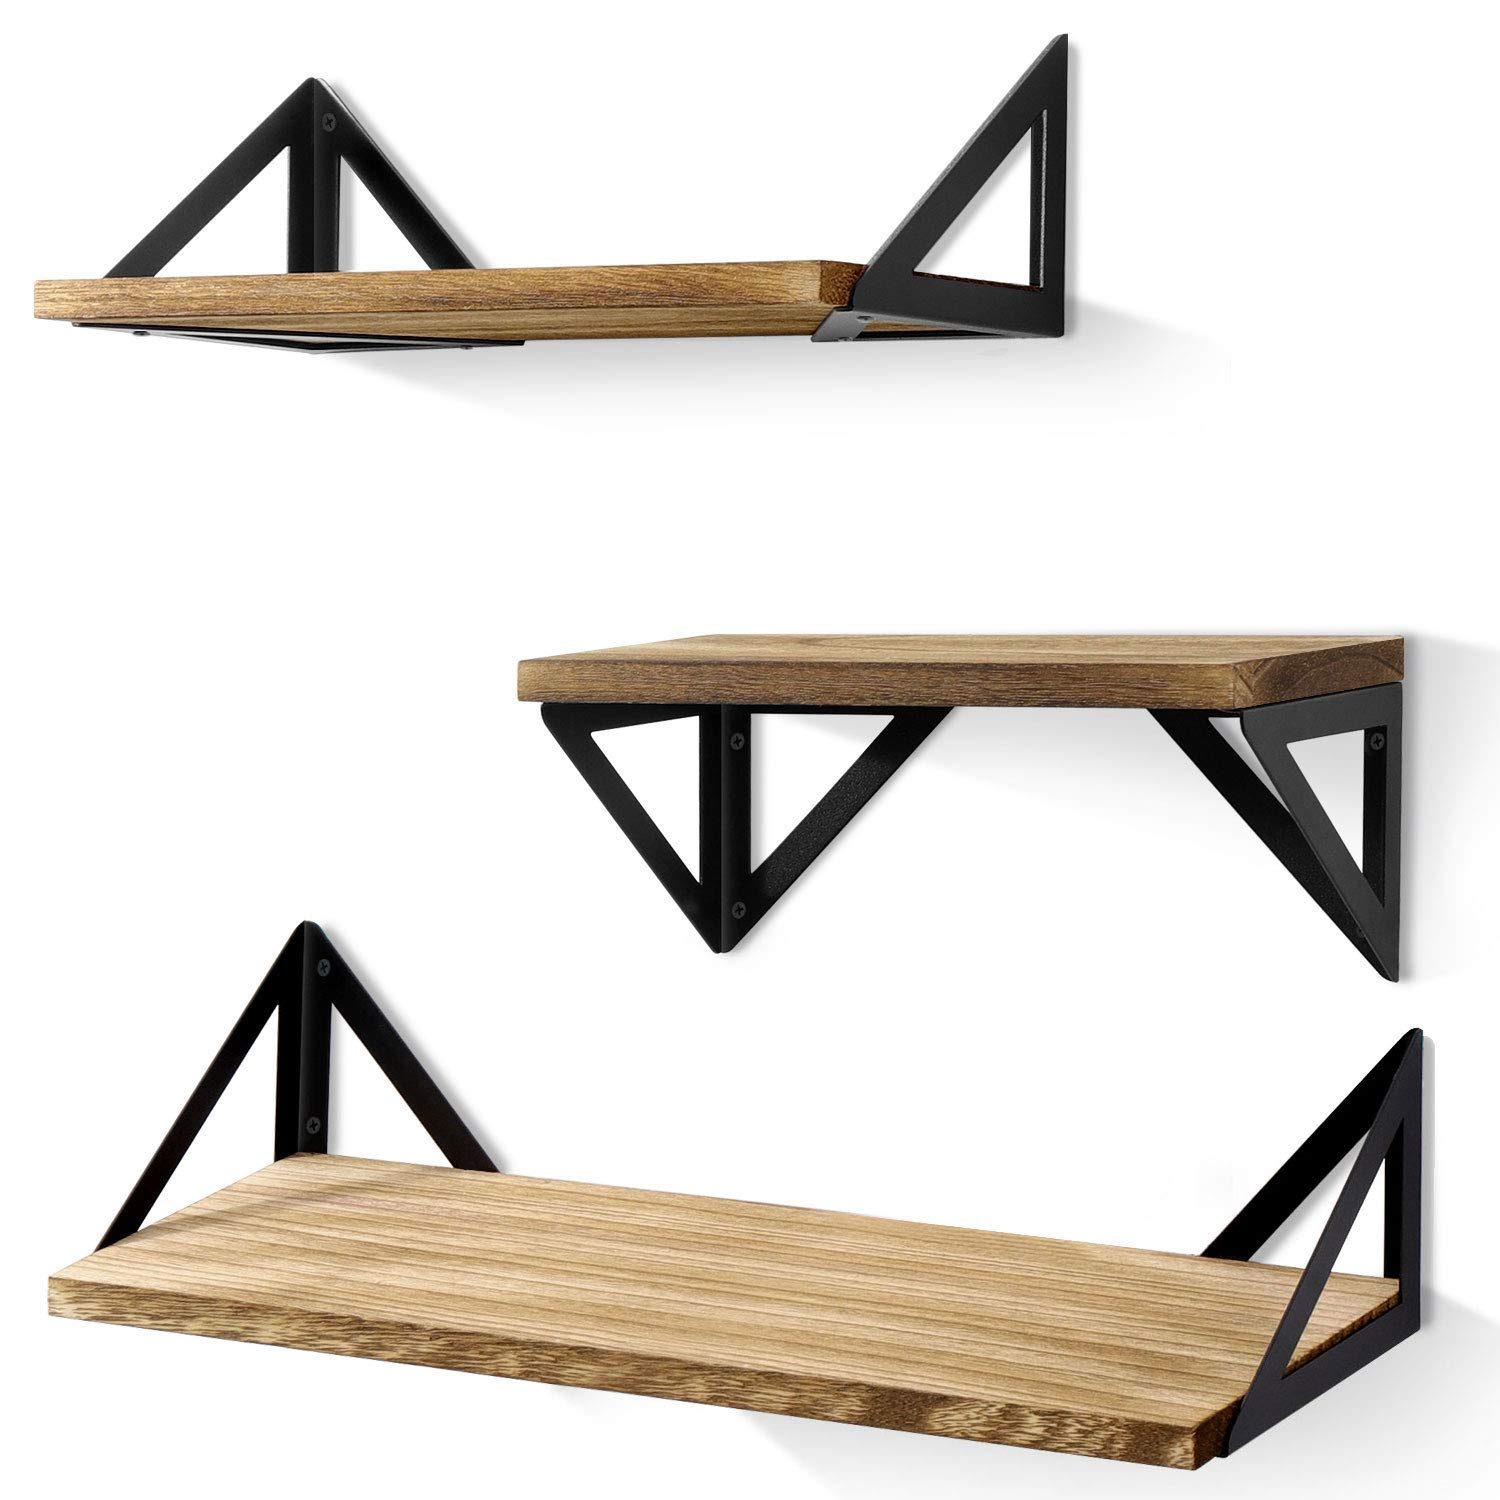 Amazon.com: BAYKA Floating Shelves Wall Mounted, Rustic Wood Wall Shelves Set Of 3 For Bedroom, Bathroom, Living Room, Kitchen: Home & Kitchen